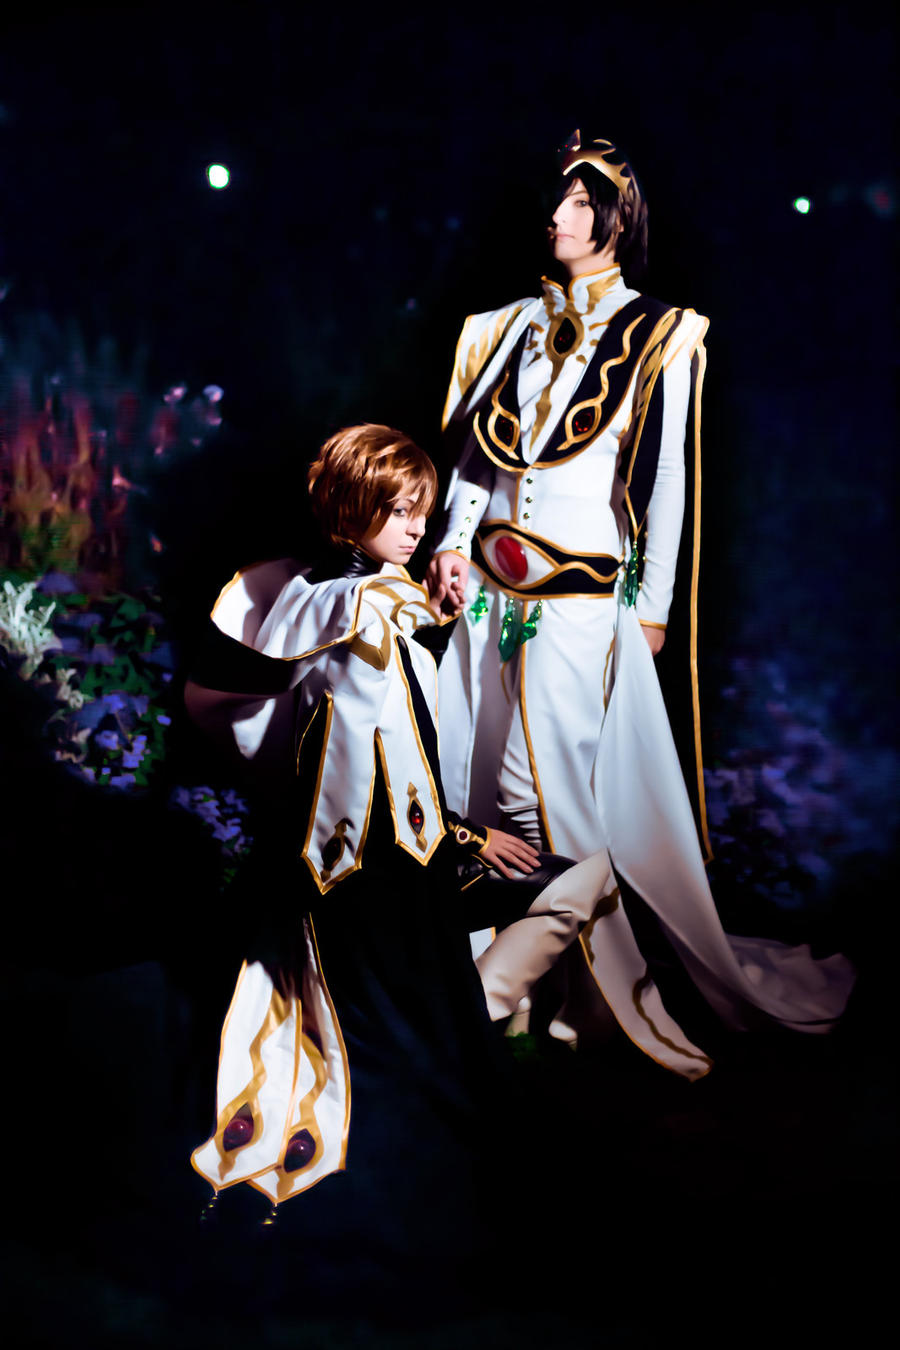 Code Geass - YES my Emperor by Firiless